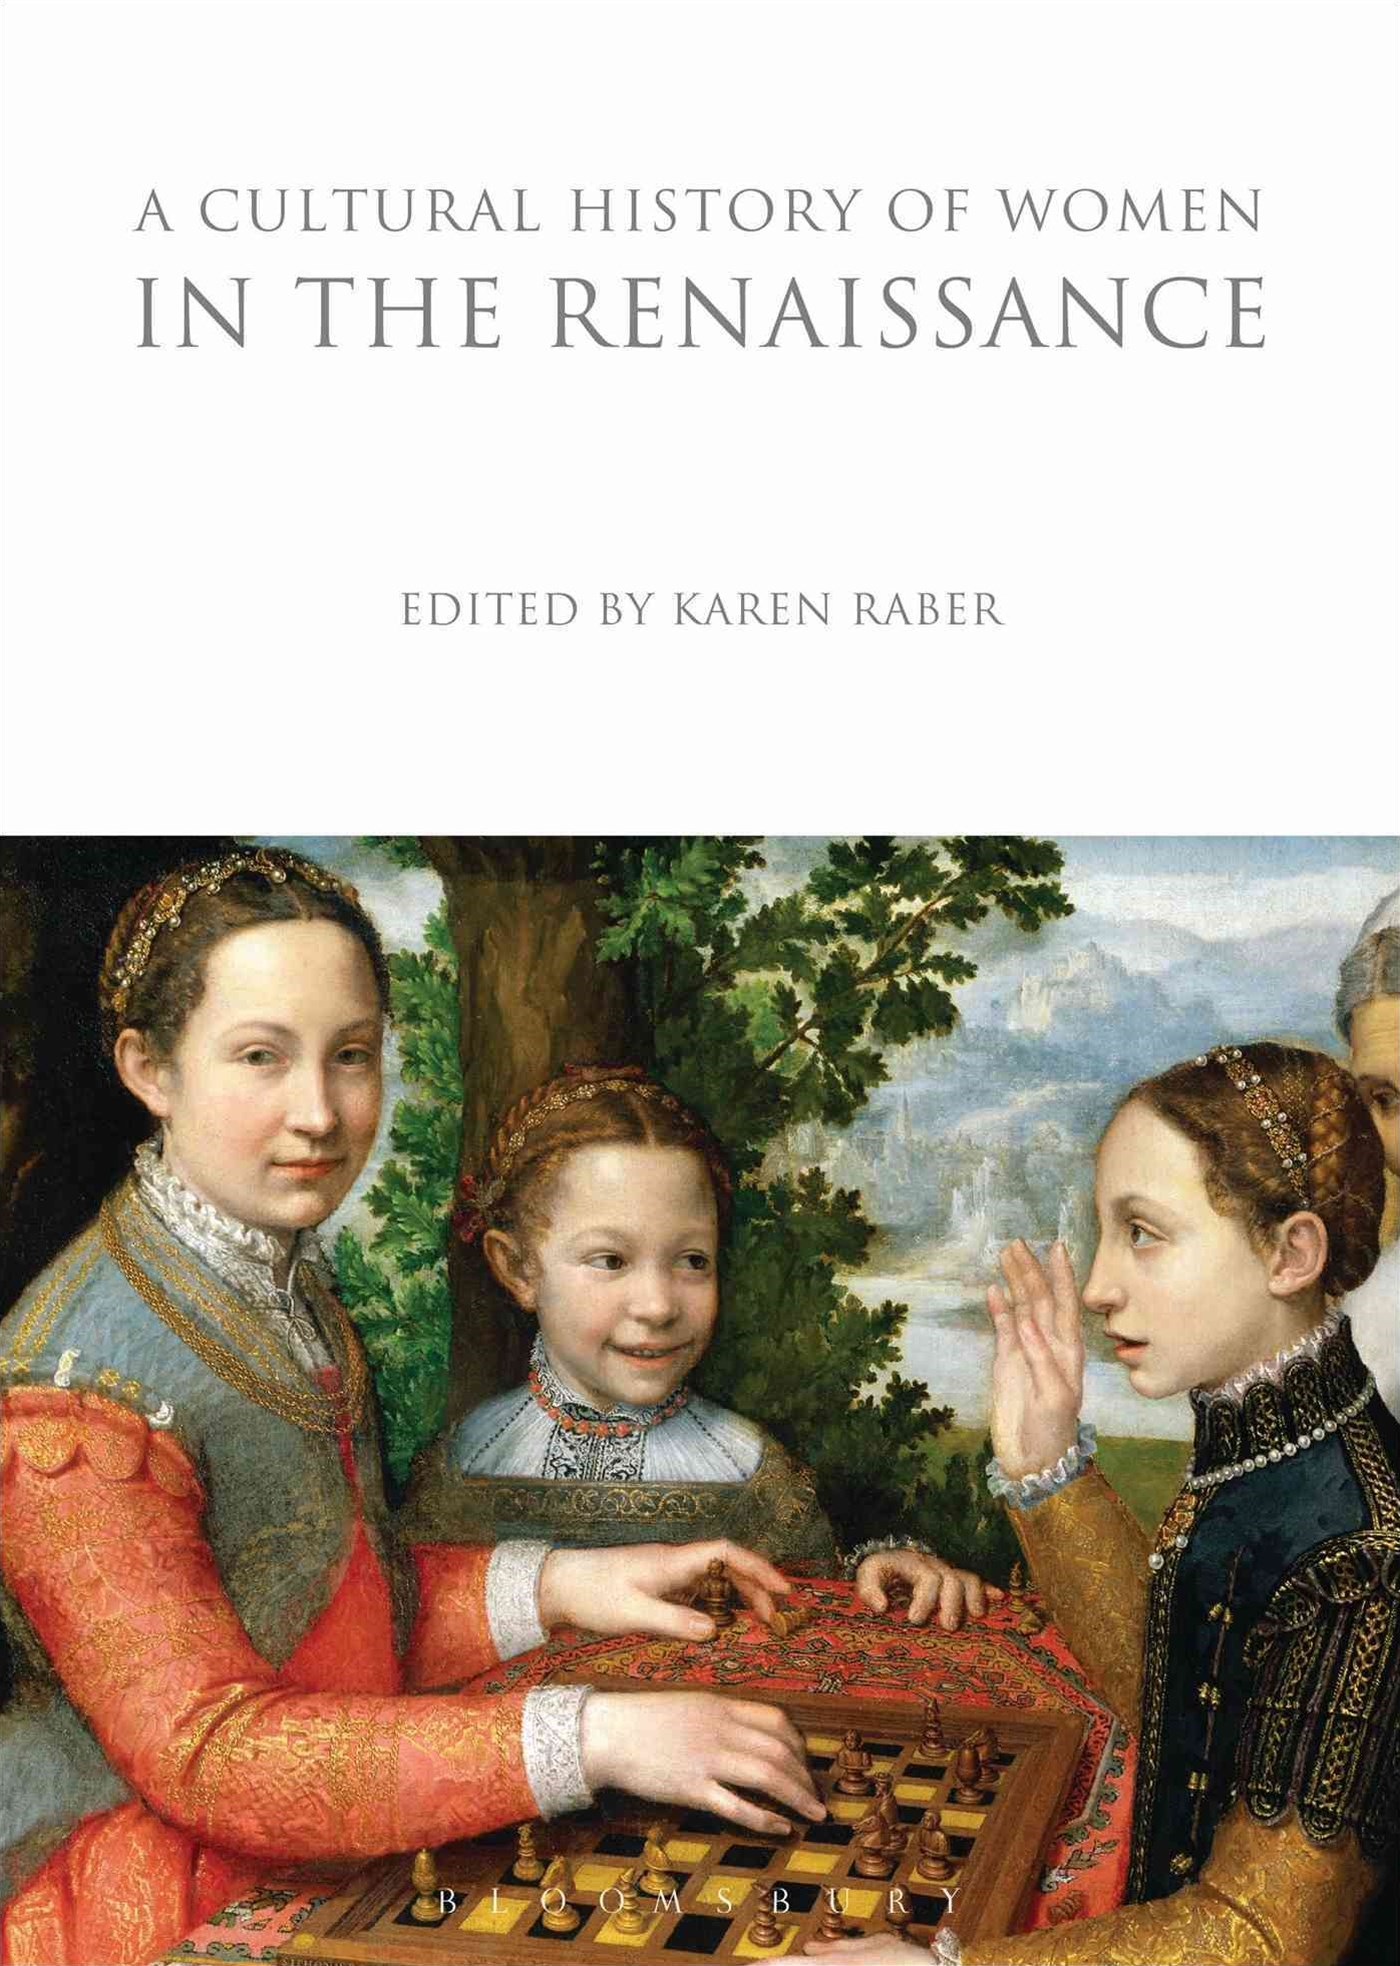 A Cultural History of Women in the Renaissance